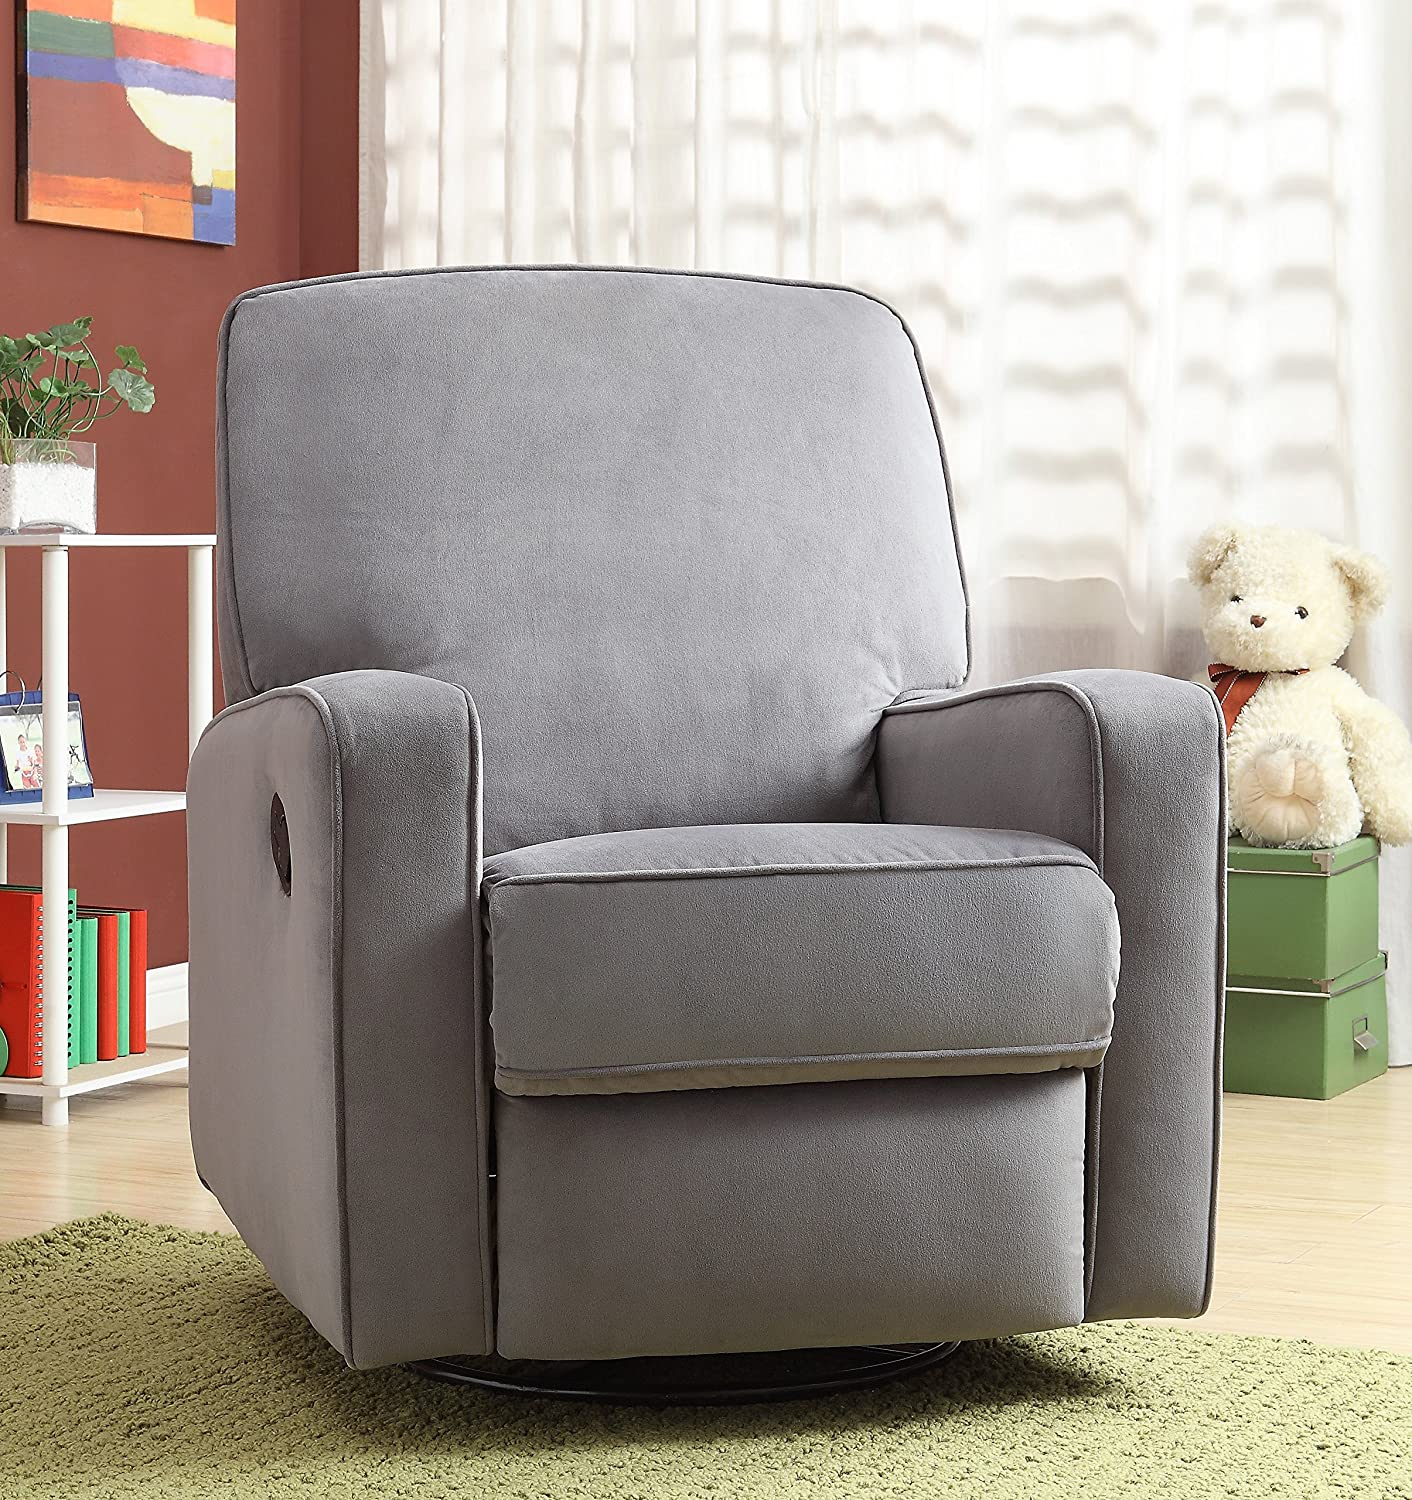 Pulaski Sutton Swivel Glider Recliner : best recliner for nursery - islam-shia.org